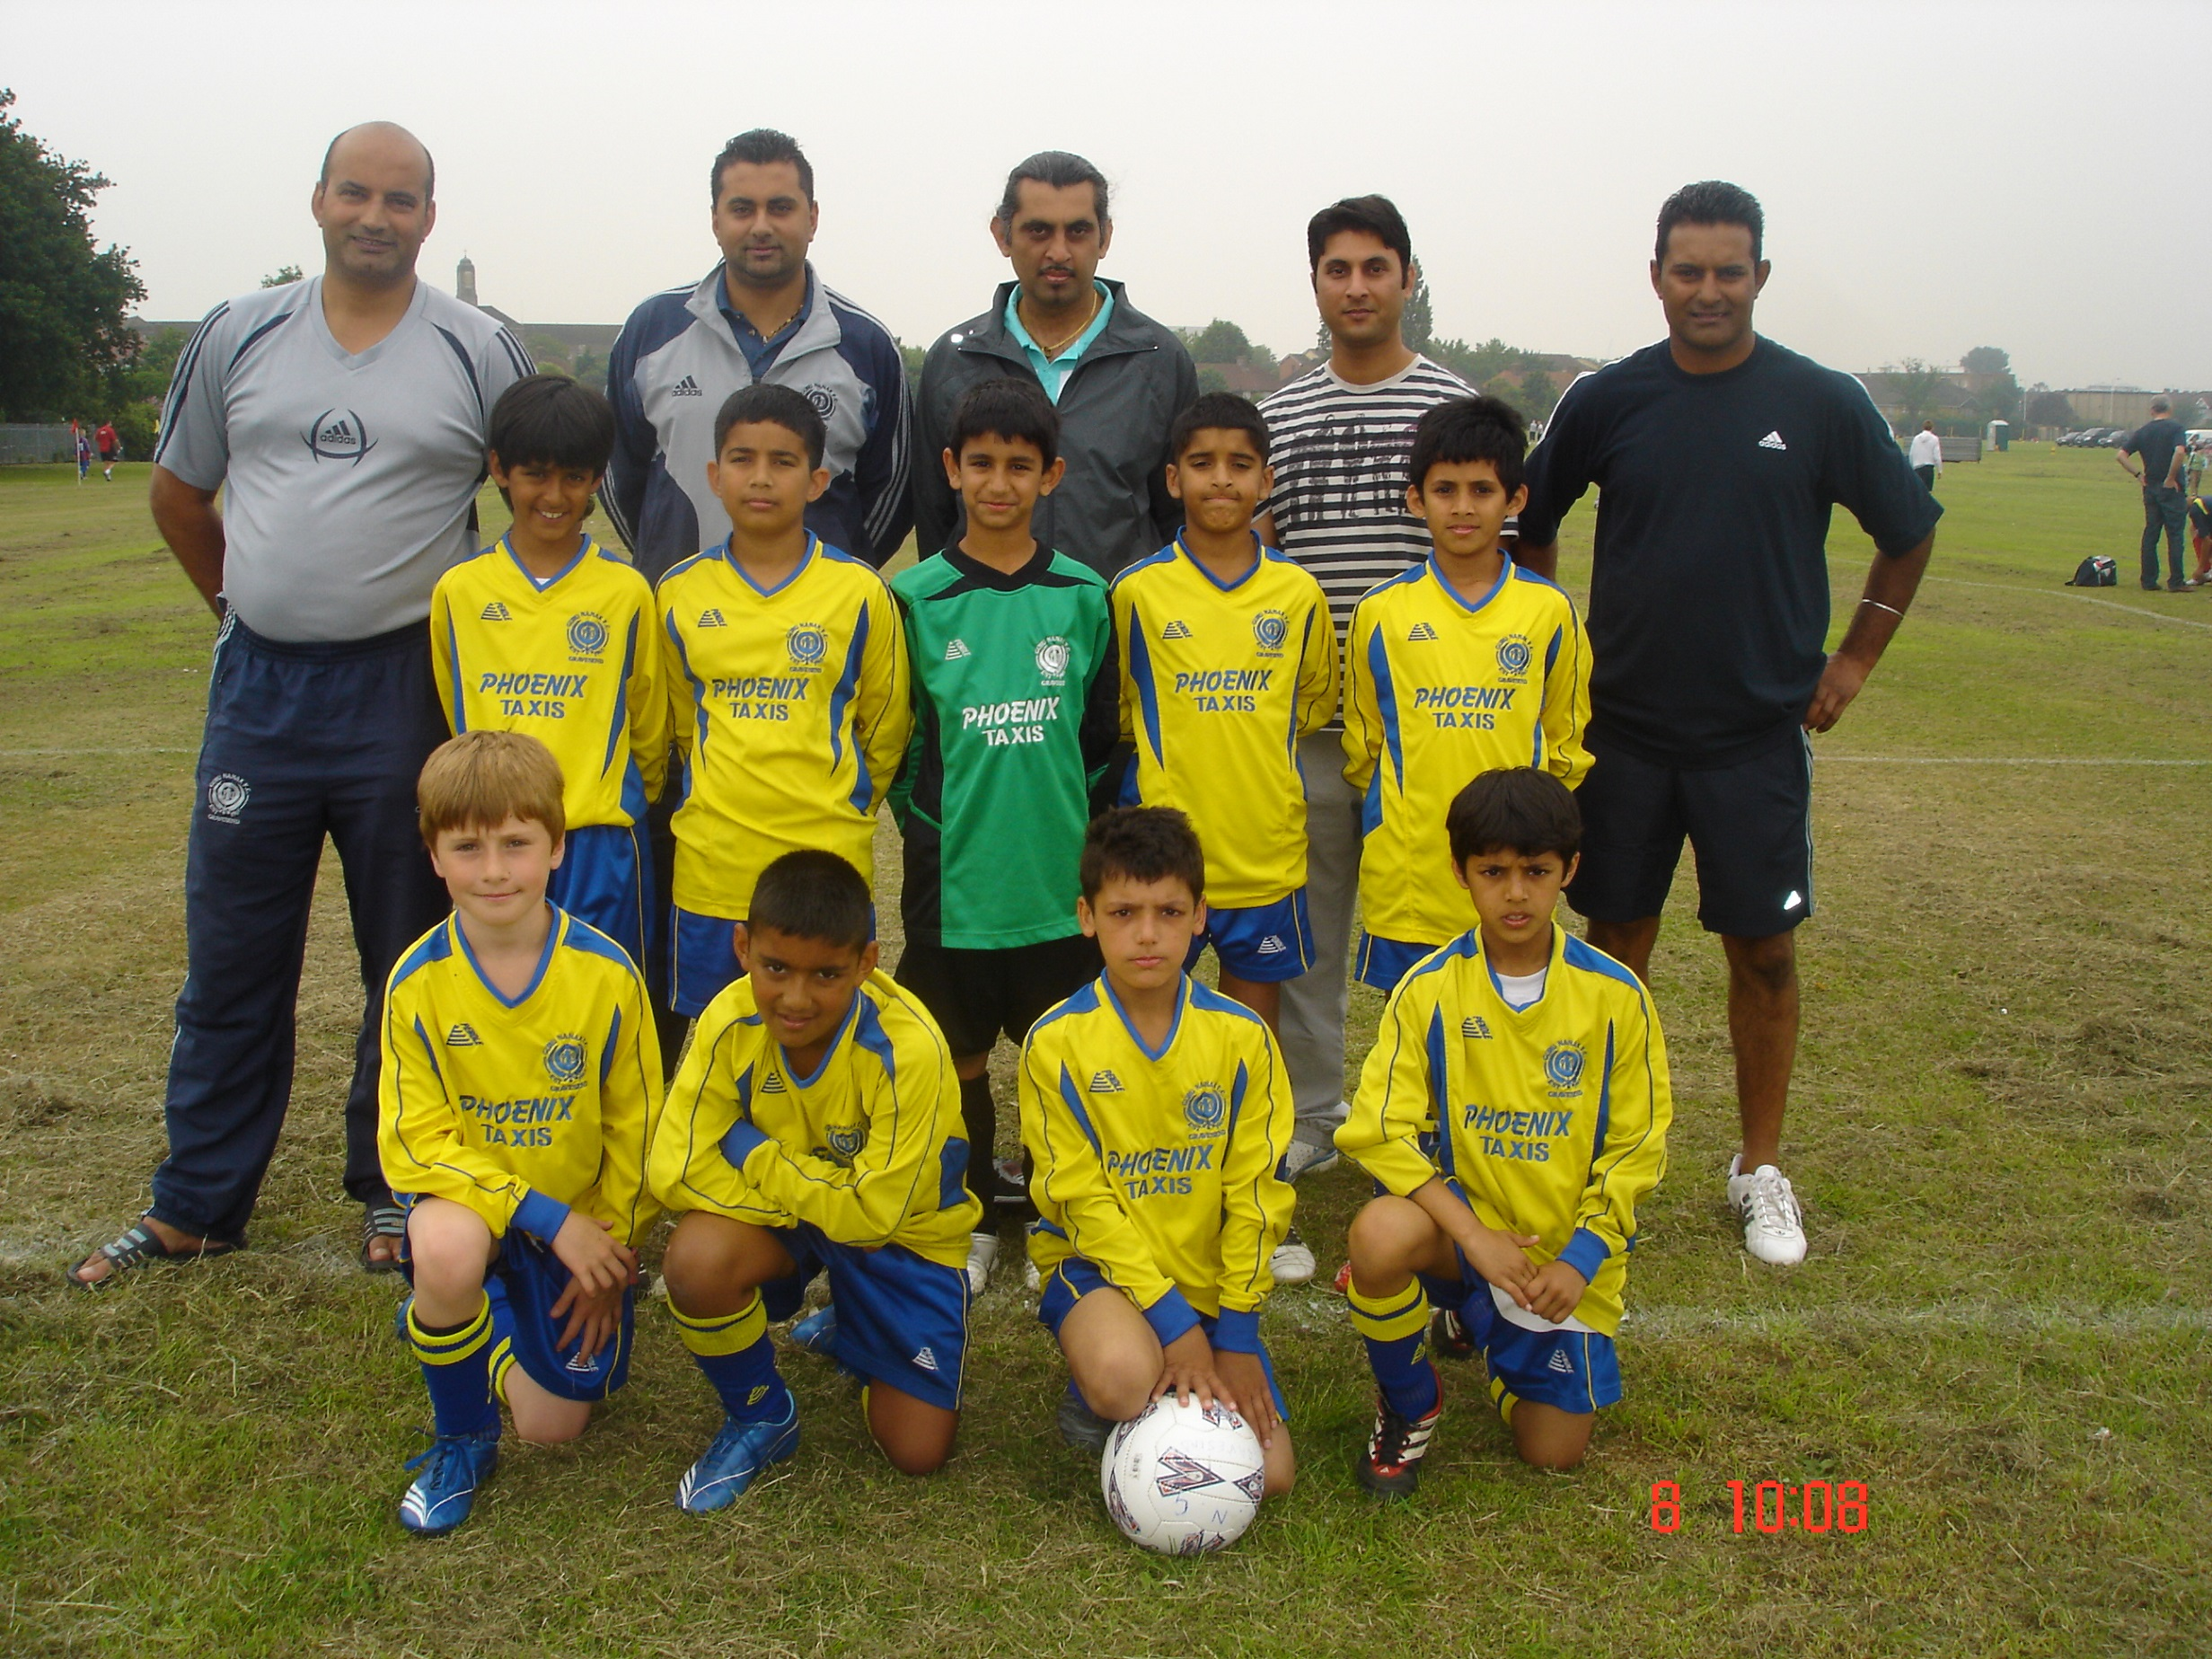 U9s at Barking 2007